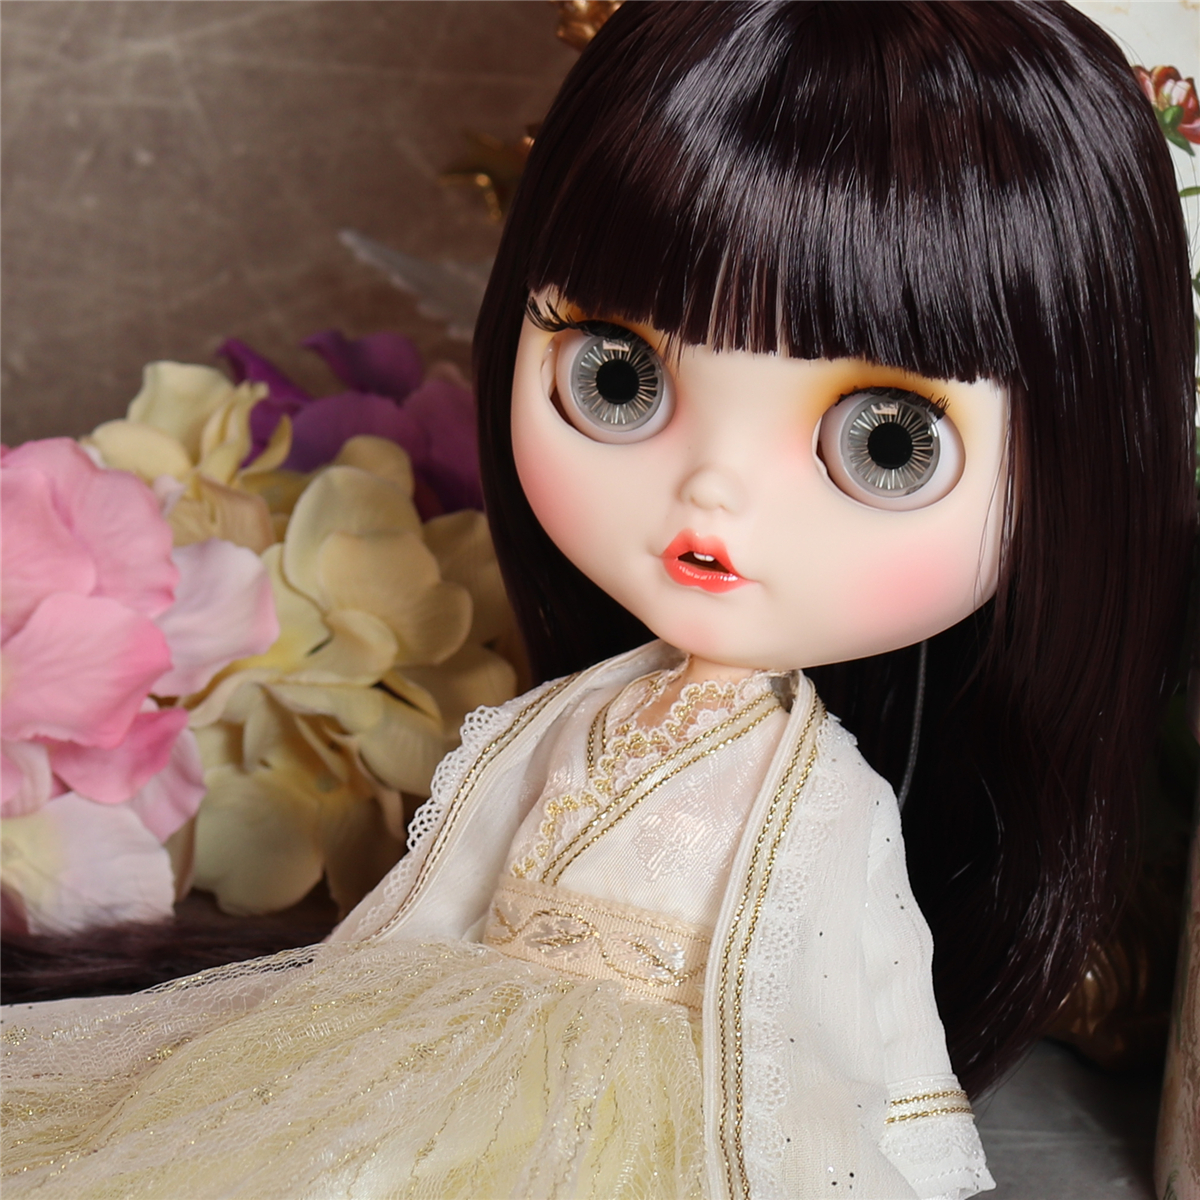 Jacey – Premium Custom Blythe Doll with Smiling Face 2